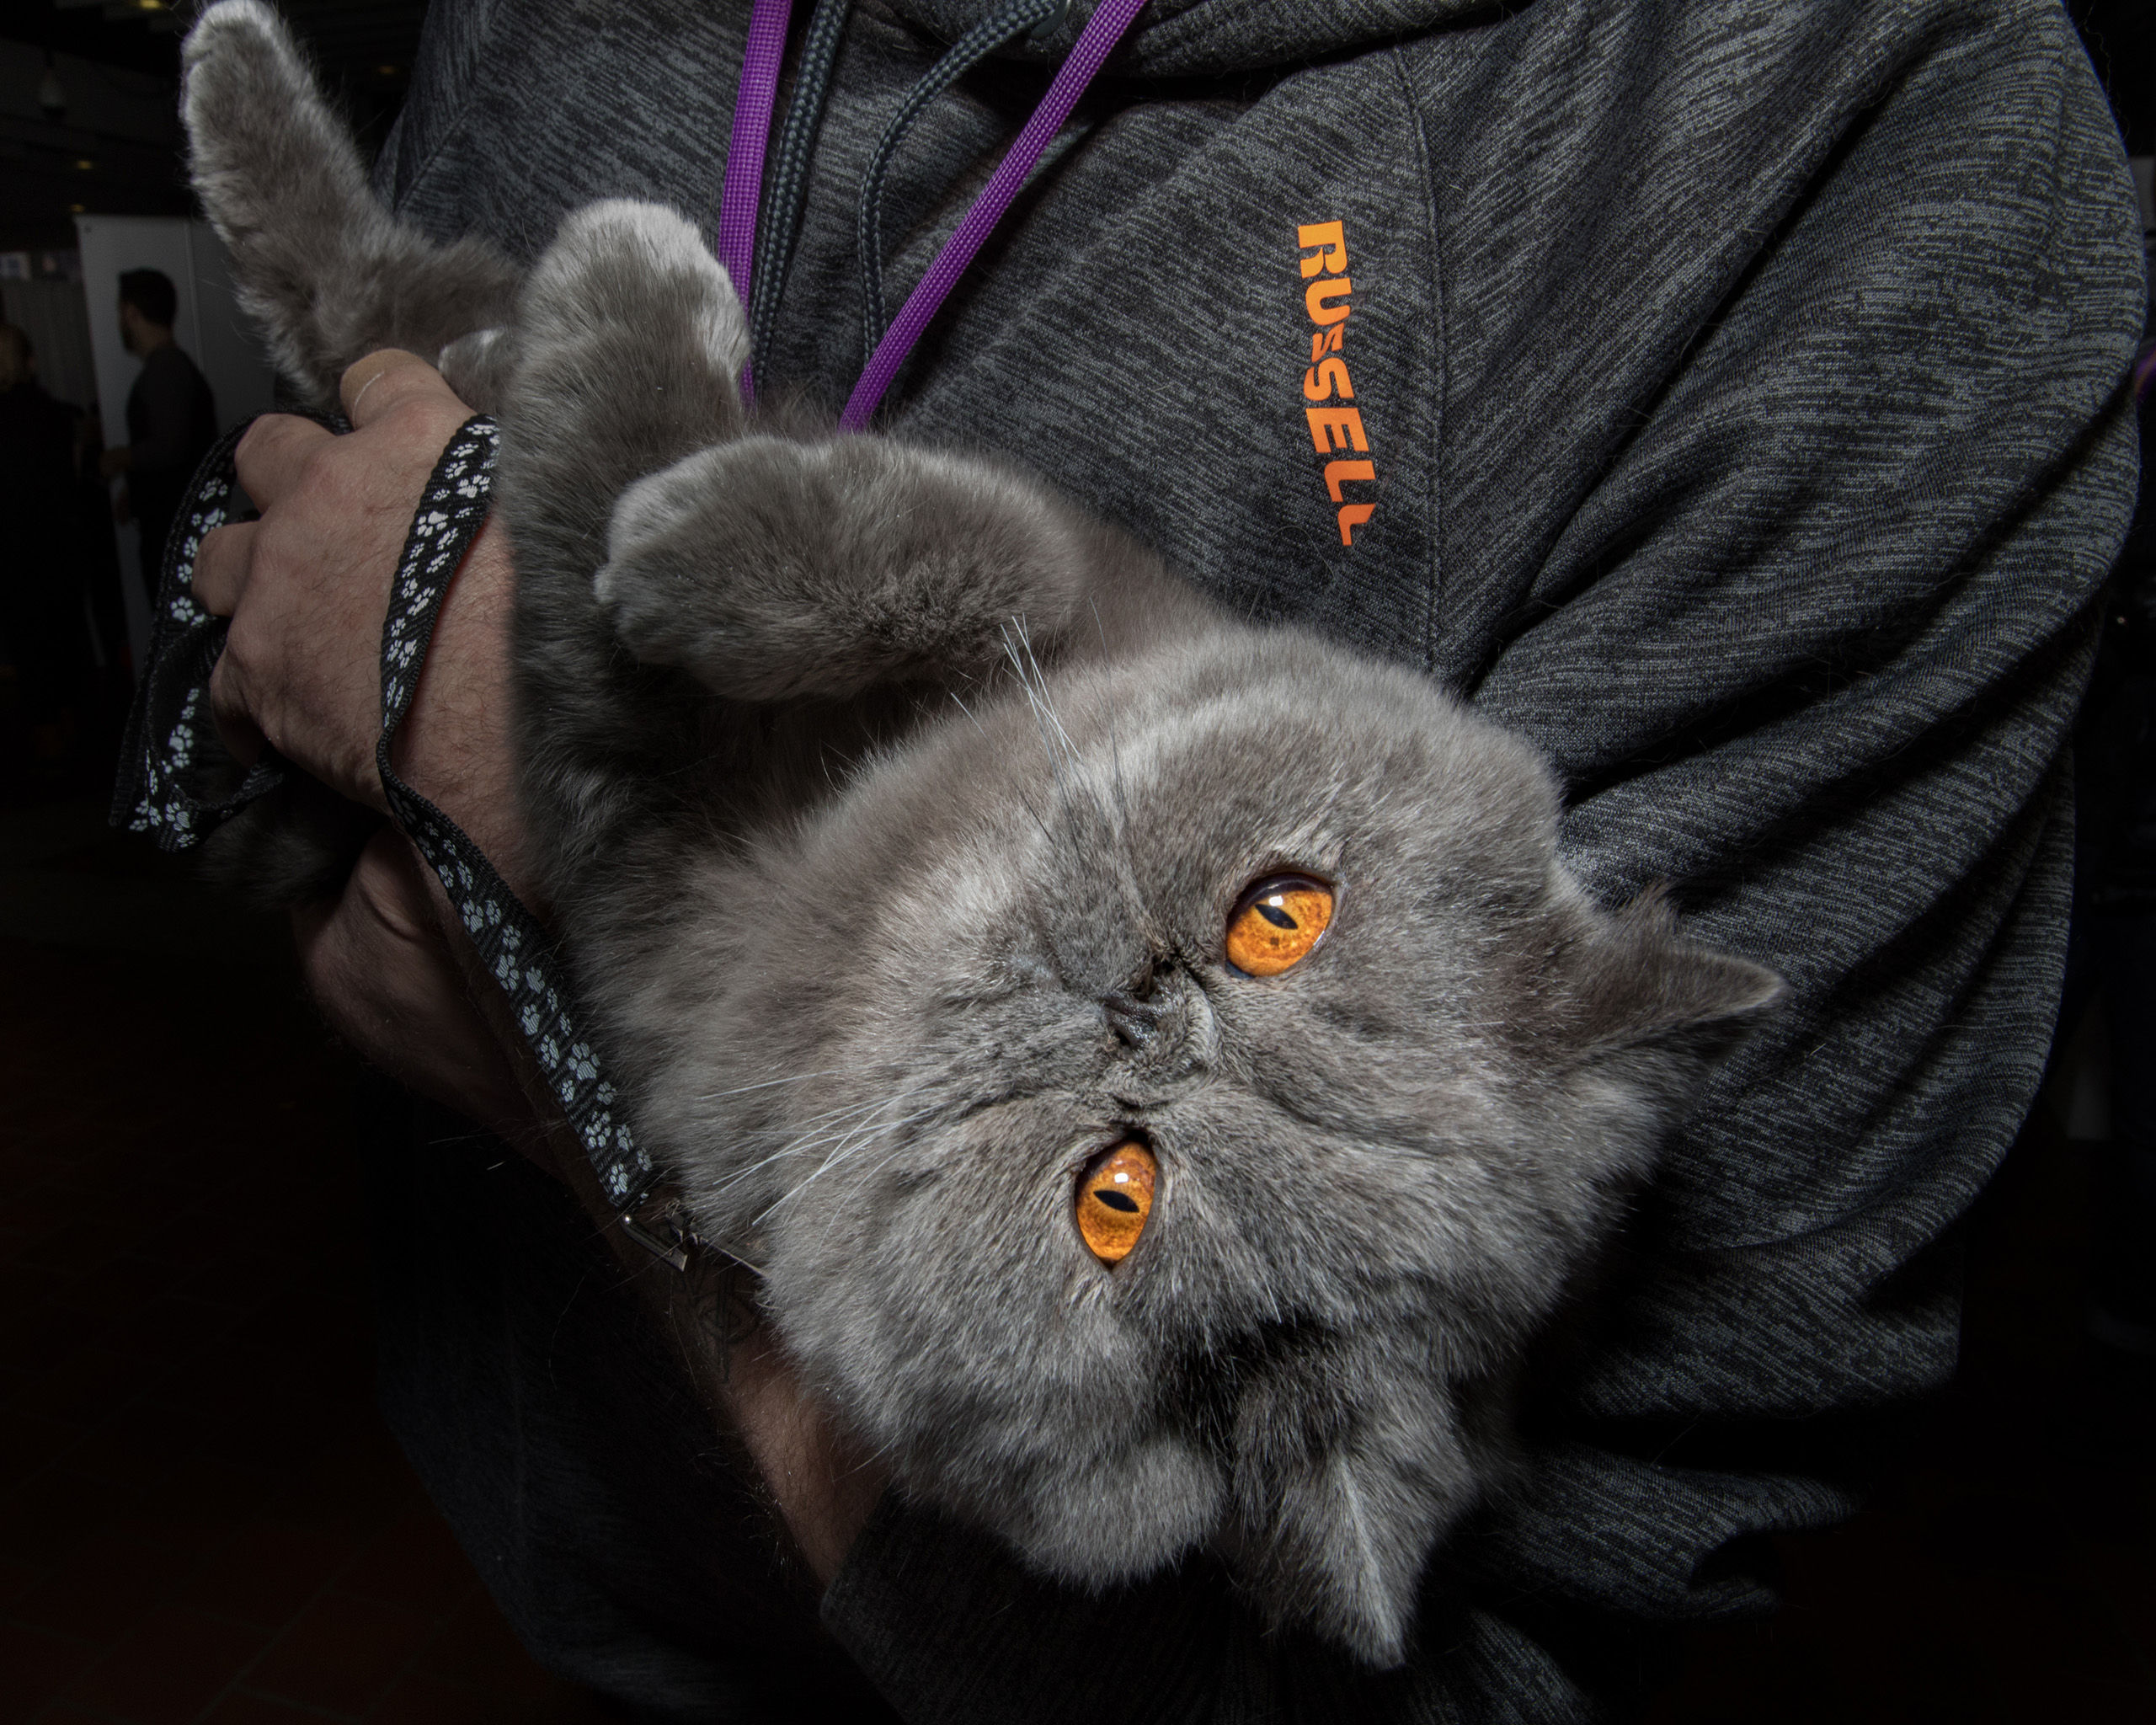 John Paul, an Exotic Shorthair at the American Kennel Club's Meet the Breeds event on Feb. 11, 2017.